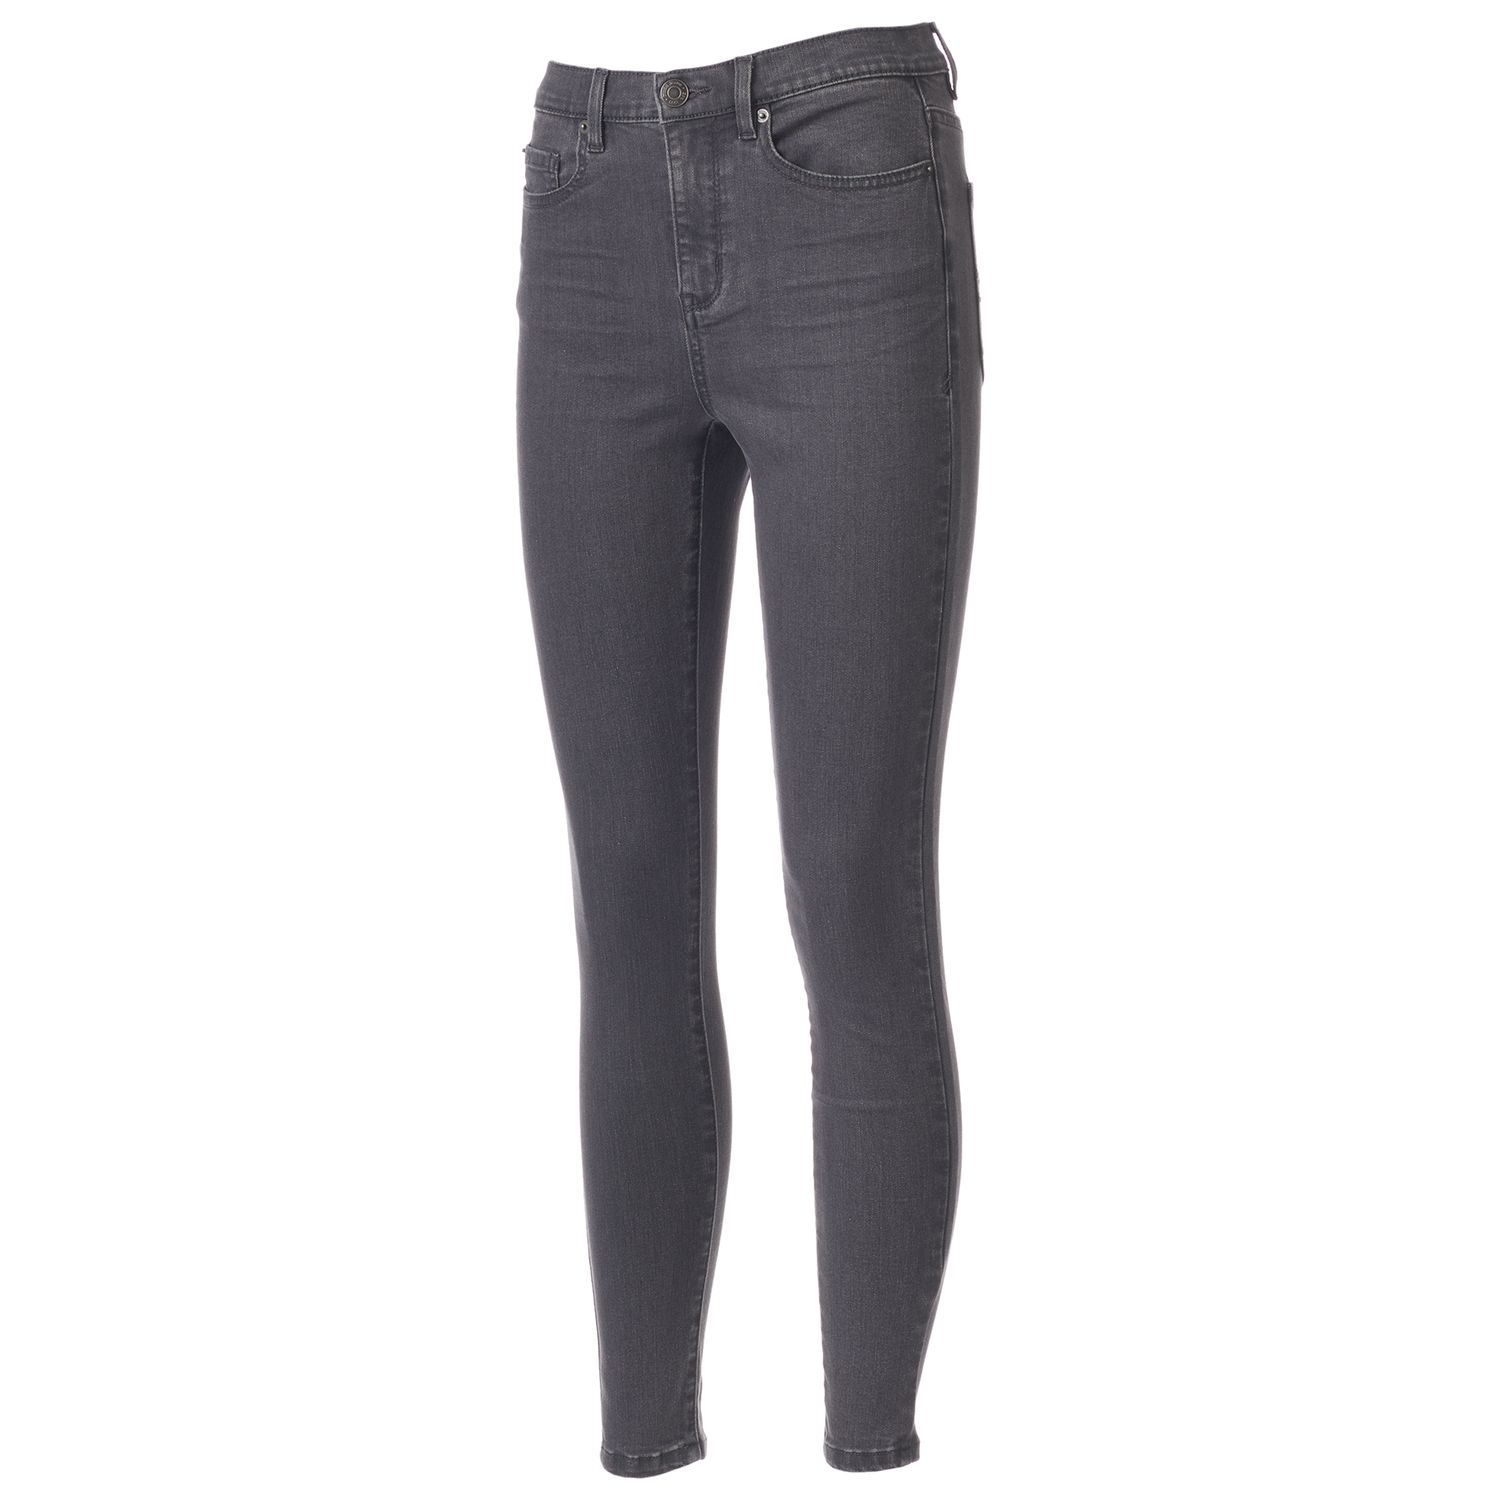 Cheap skinny jeans for juniors online